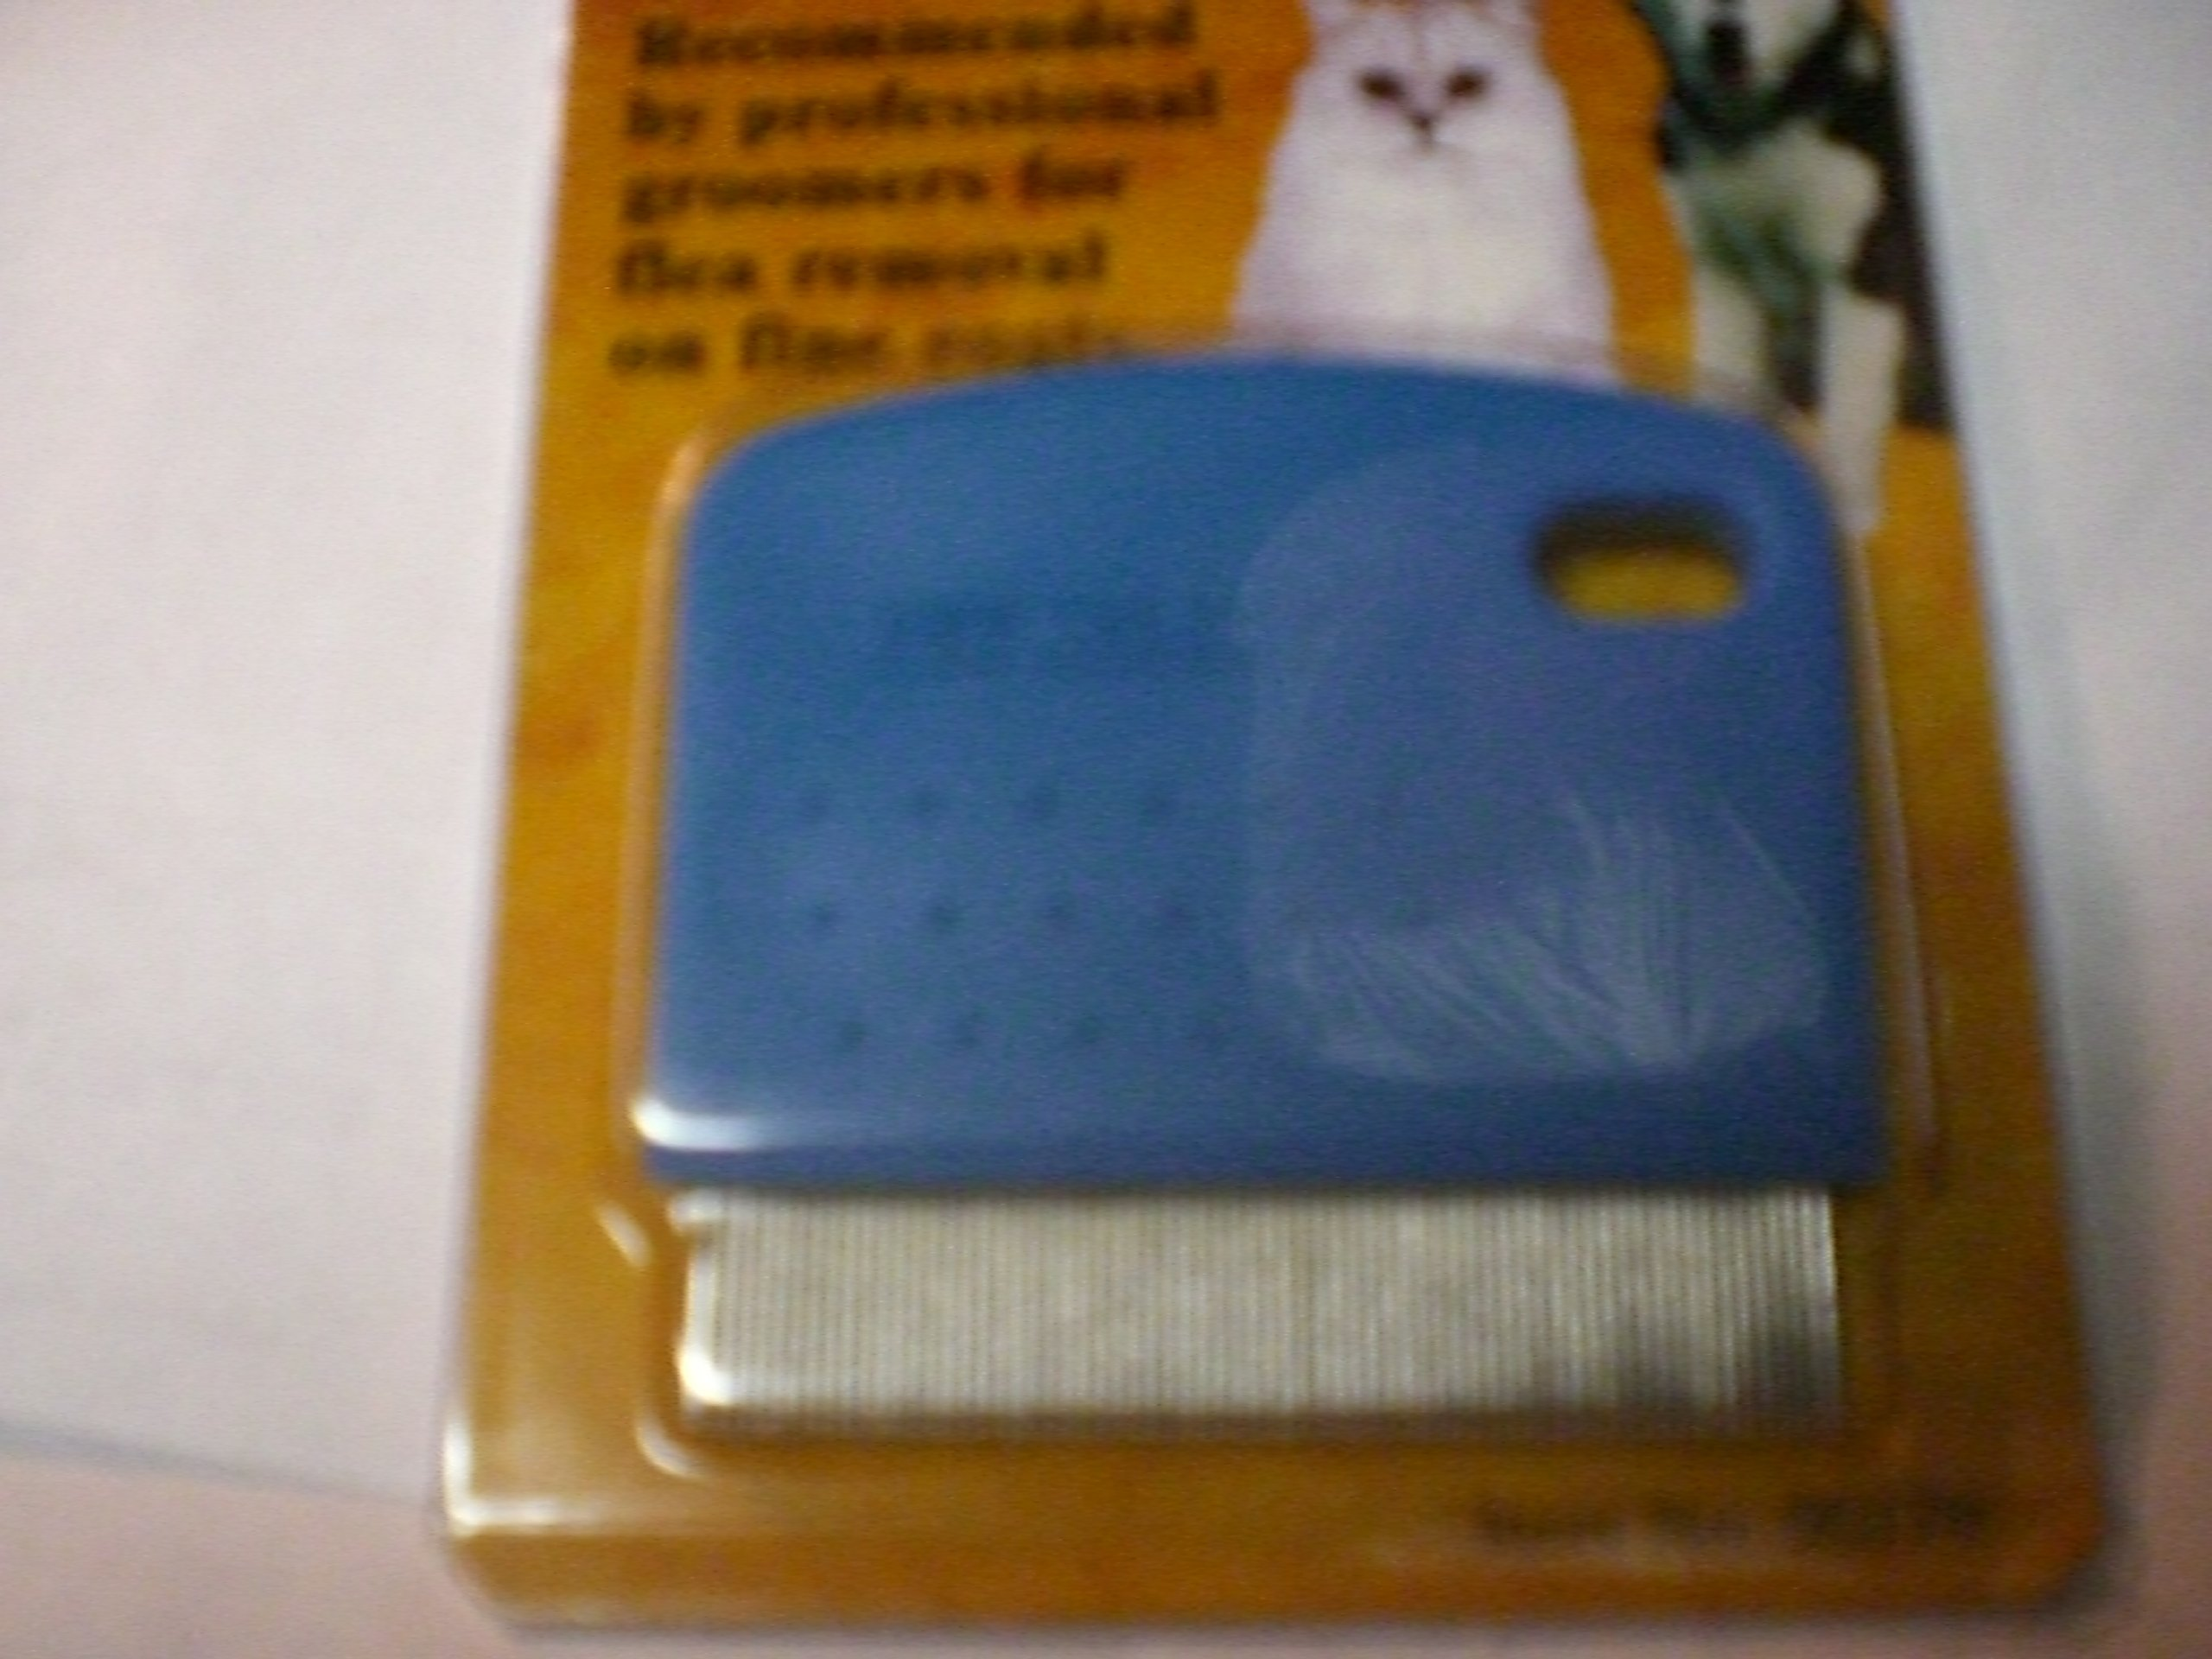 Flea Comb for Dogs & Cats , Recommended By Professional Groomers for Flea Removal on Fine Coatsl by Four Paws